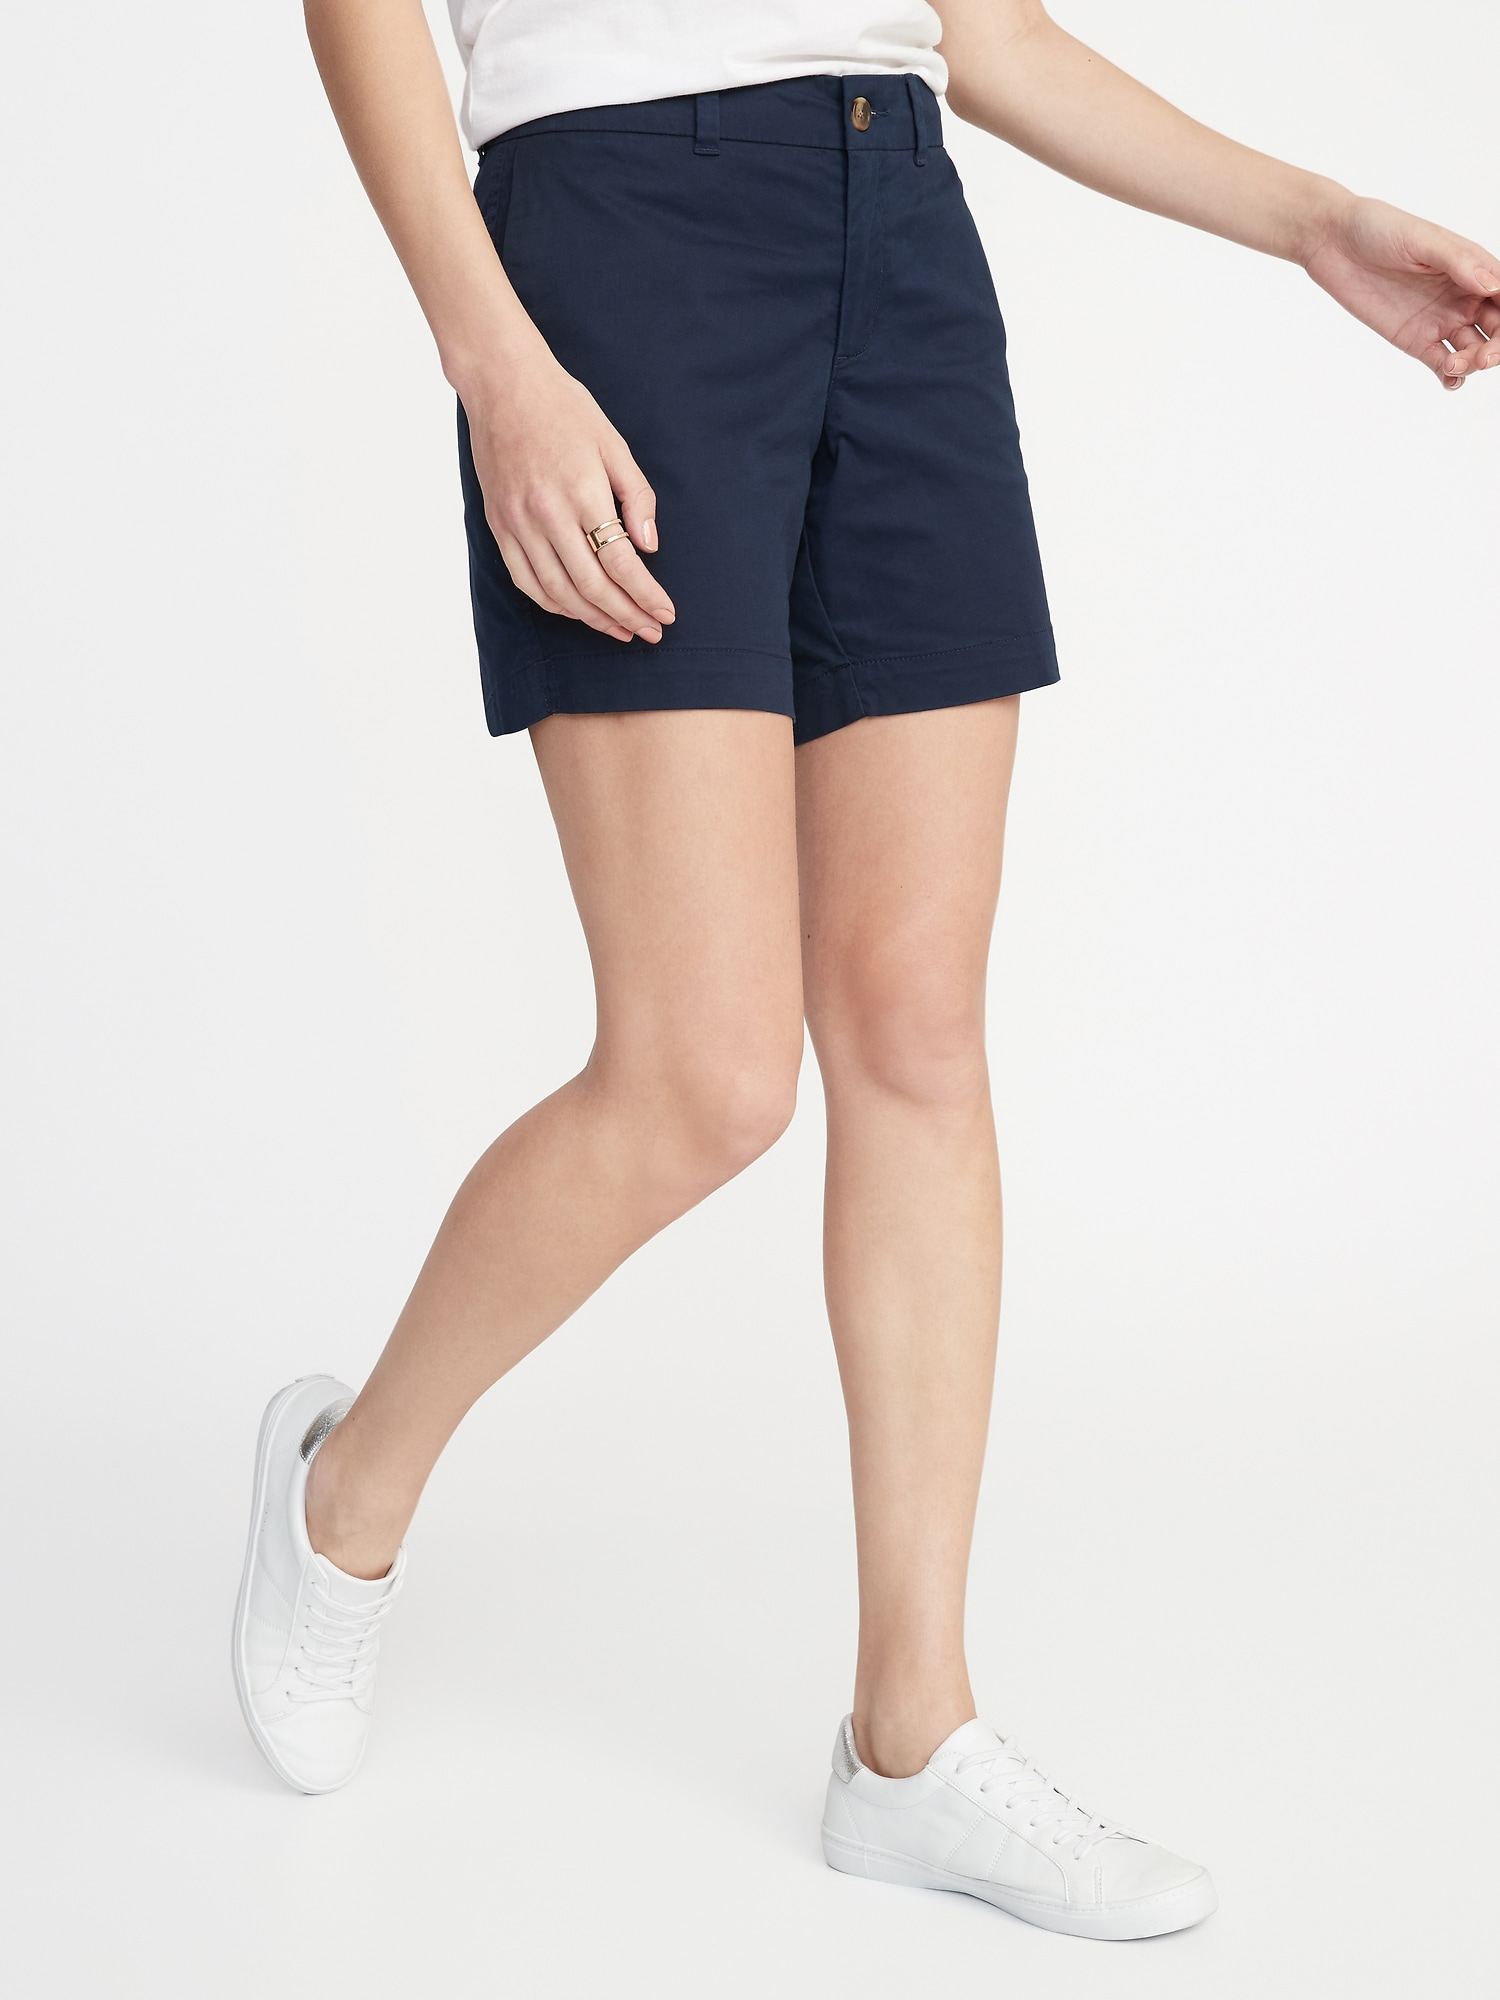 83212a71b3d Mid-Rise Twill Everyday Shorts for Women - 7-inch inseam